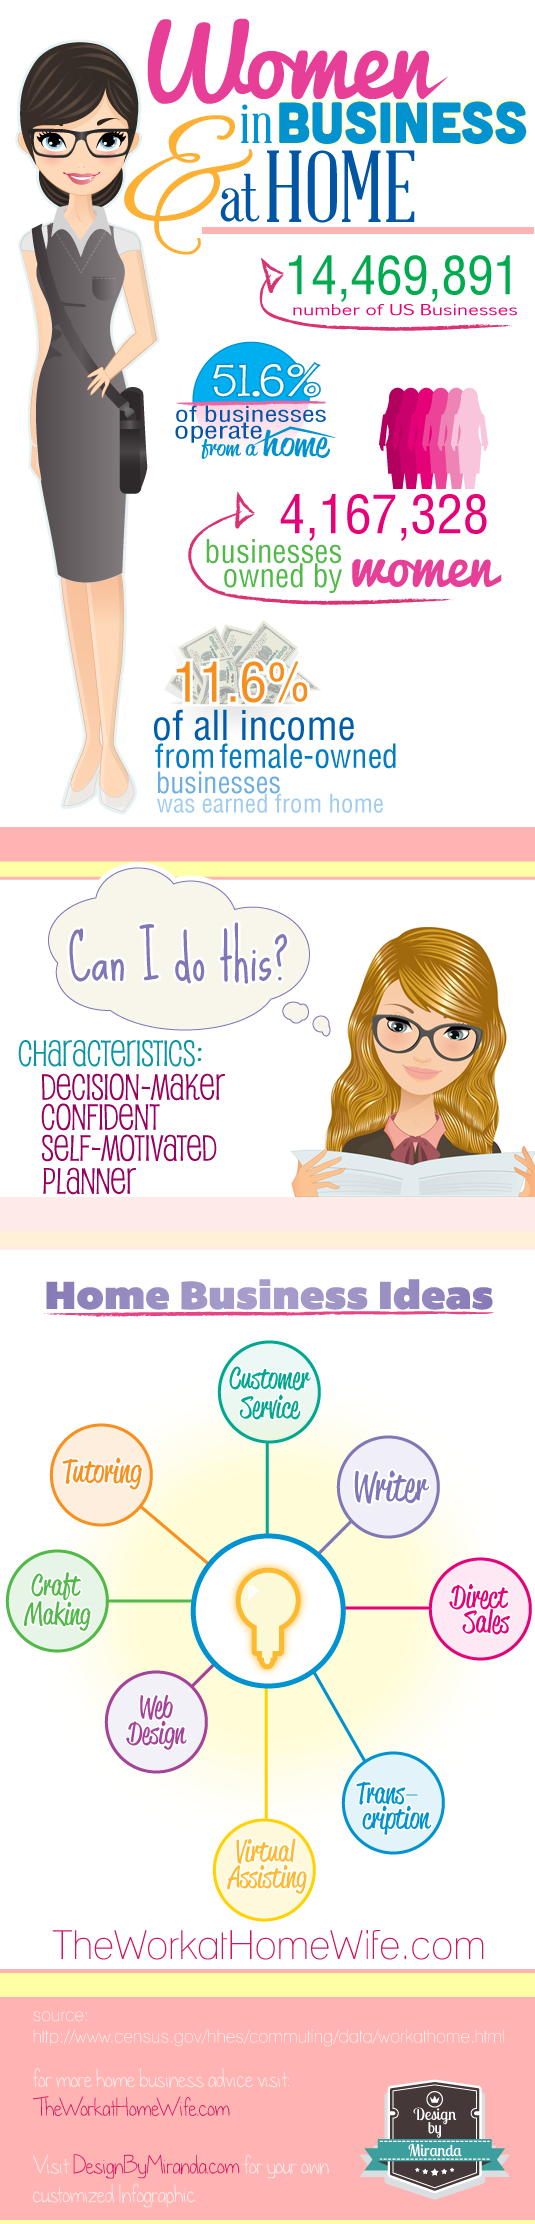 Home Business Ideas for Women Infographic | Business | Pinterest ...